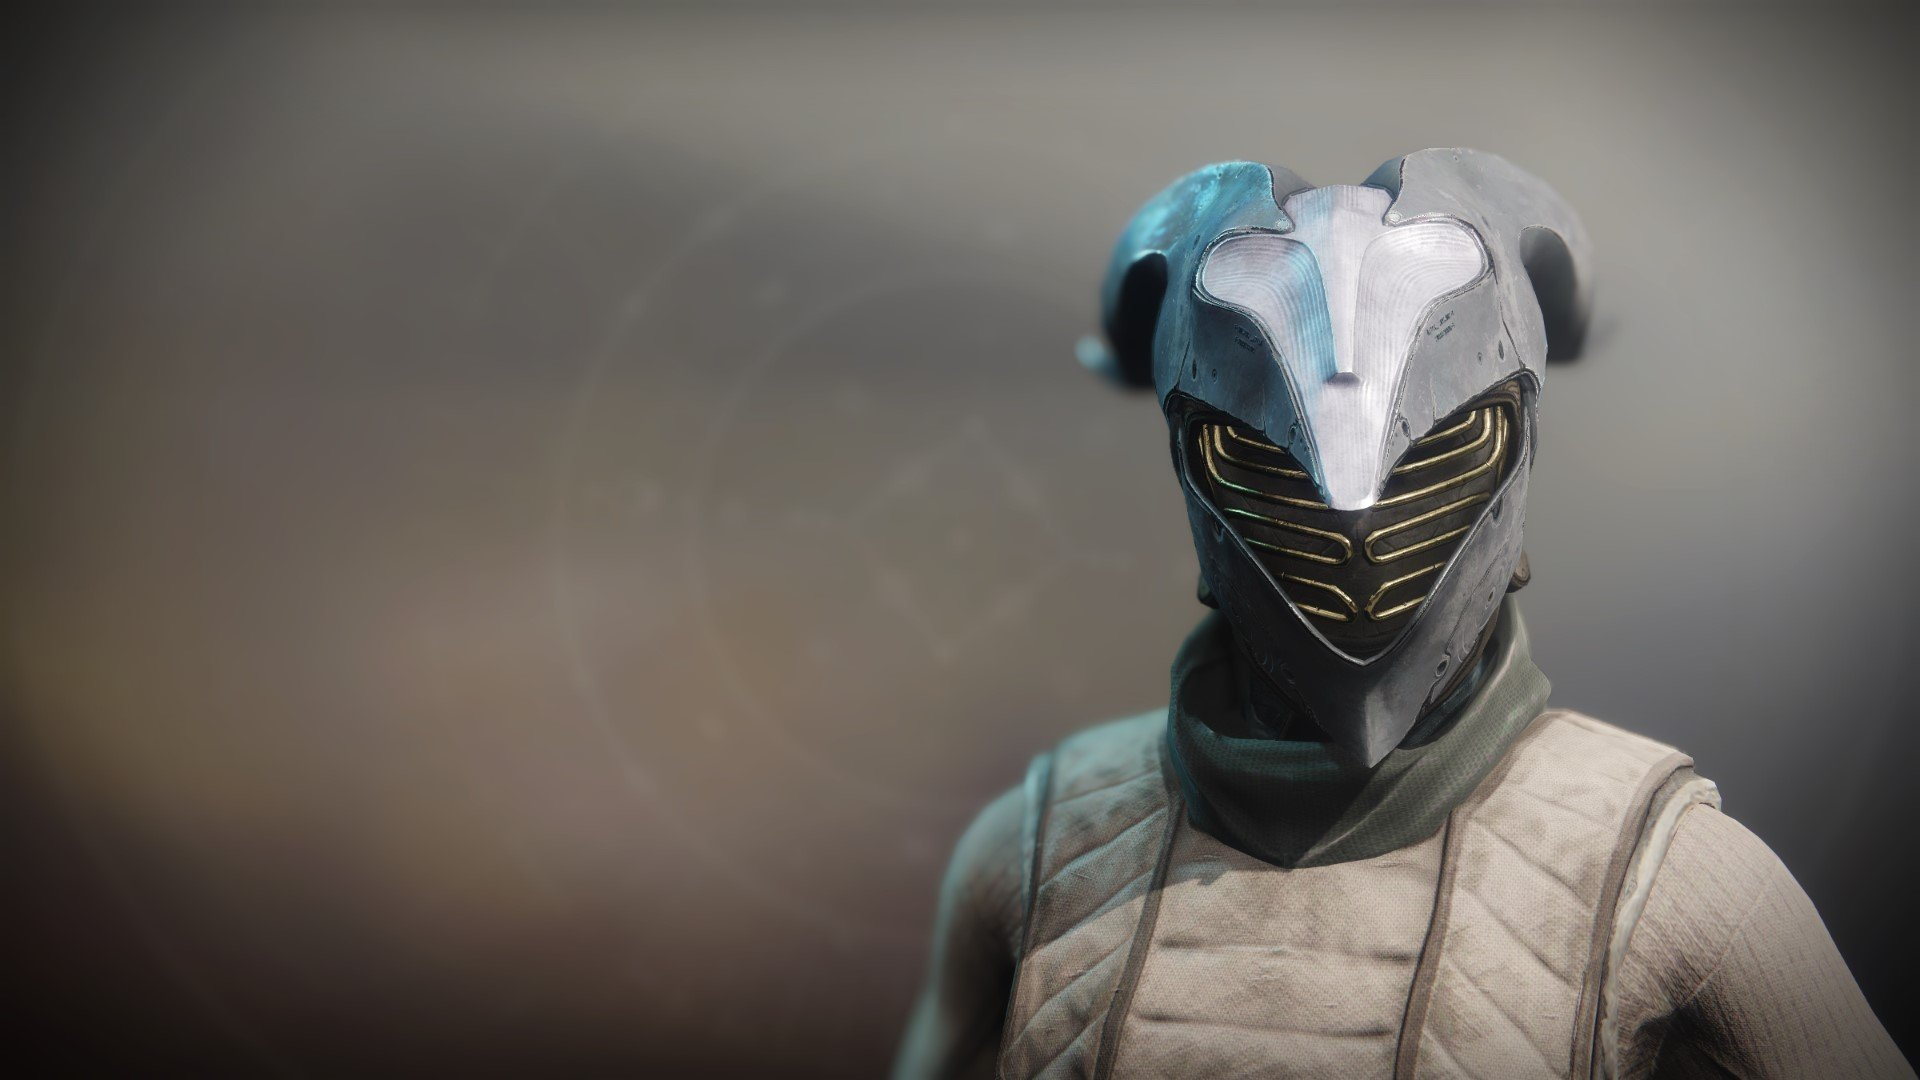 An in-game render of the Felwinter's Helm.